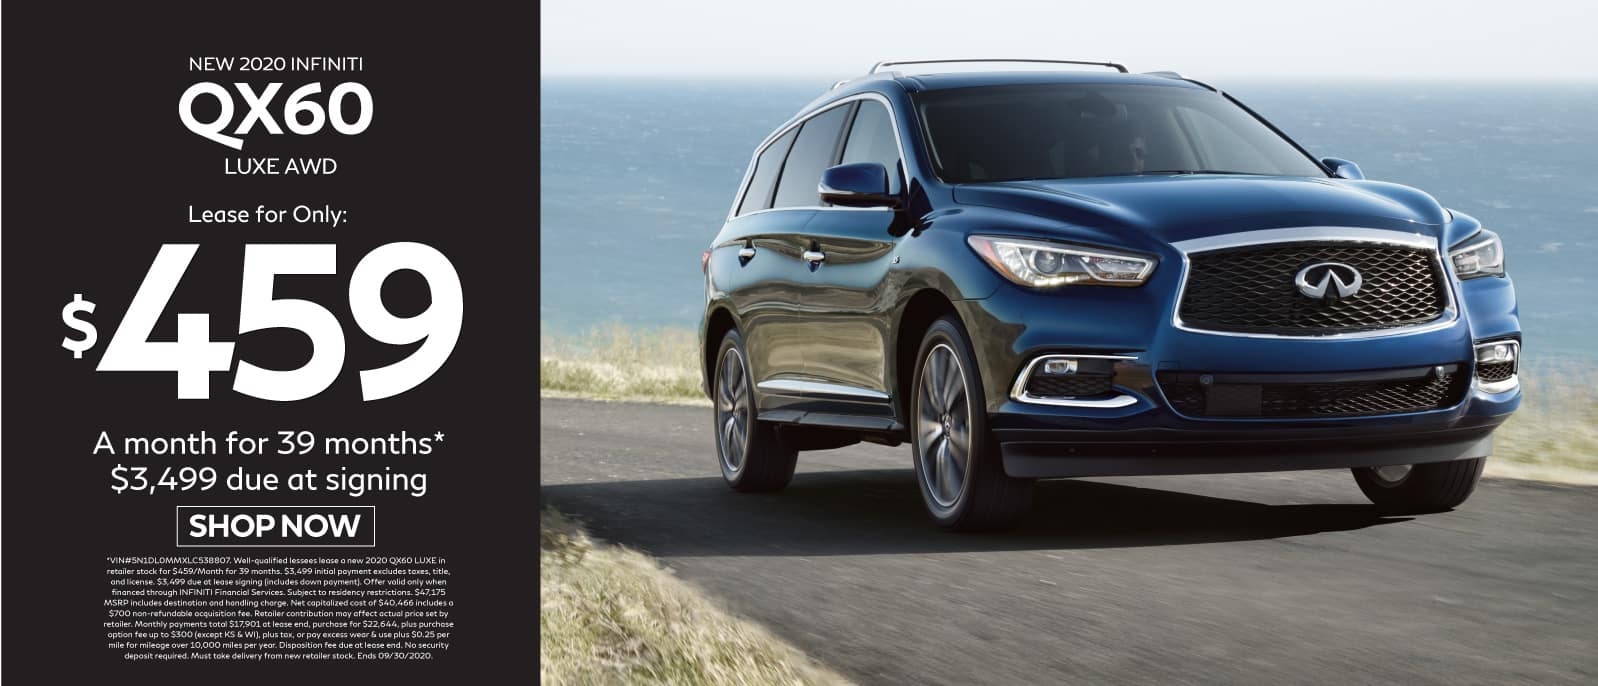 2020 INFINITI QX60 Lease for $459 a month for 39 months $3499 due at signing. Shop Now.